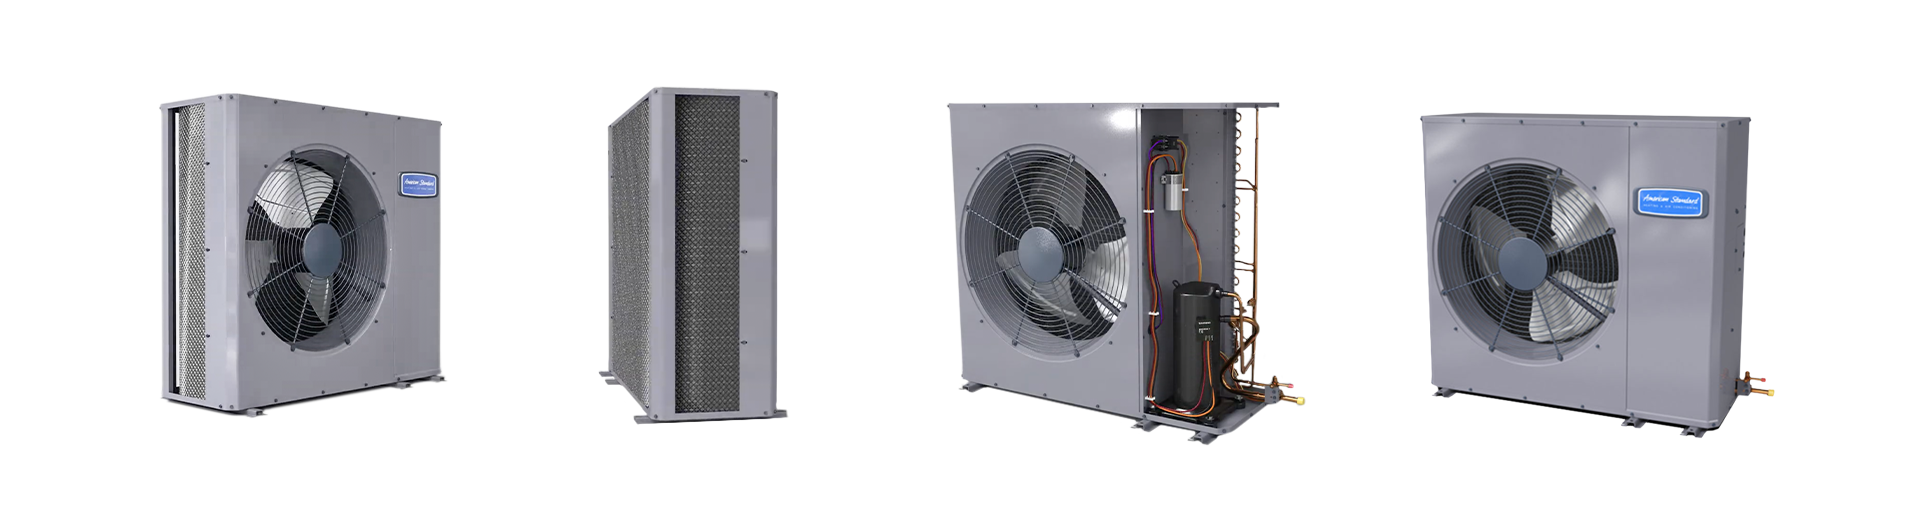 4 photos of slim line AC units rotated to different views